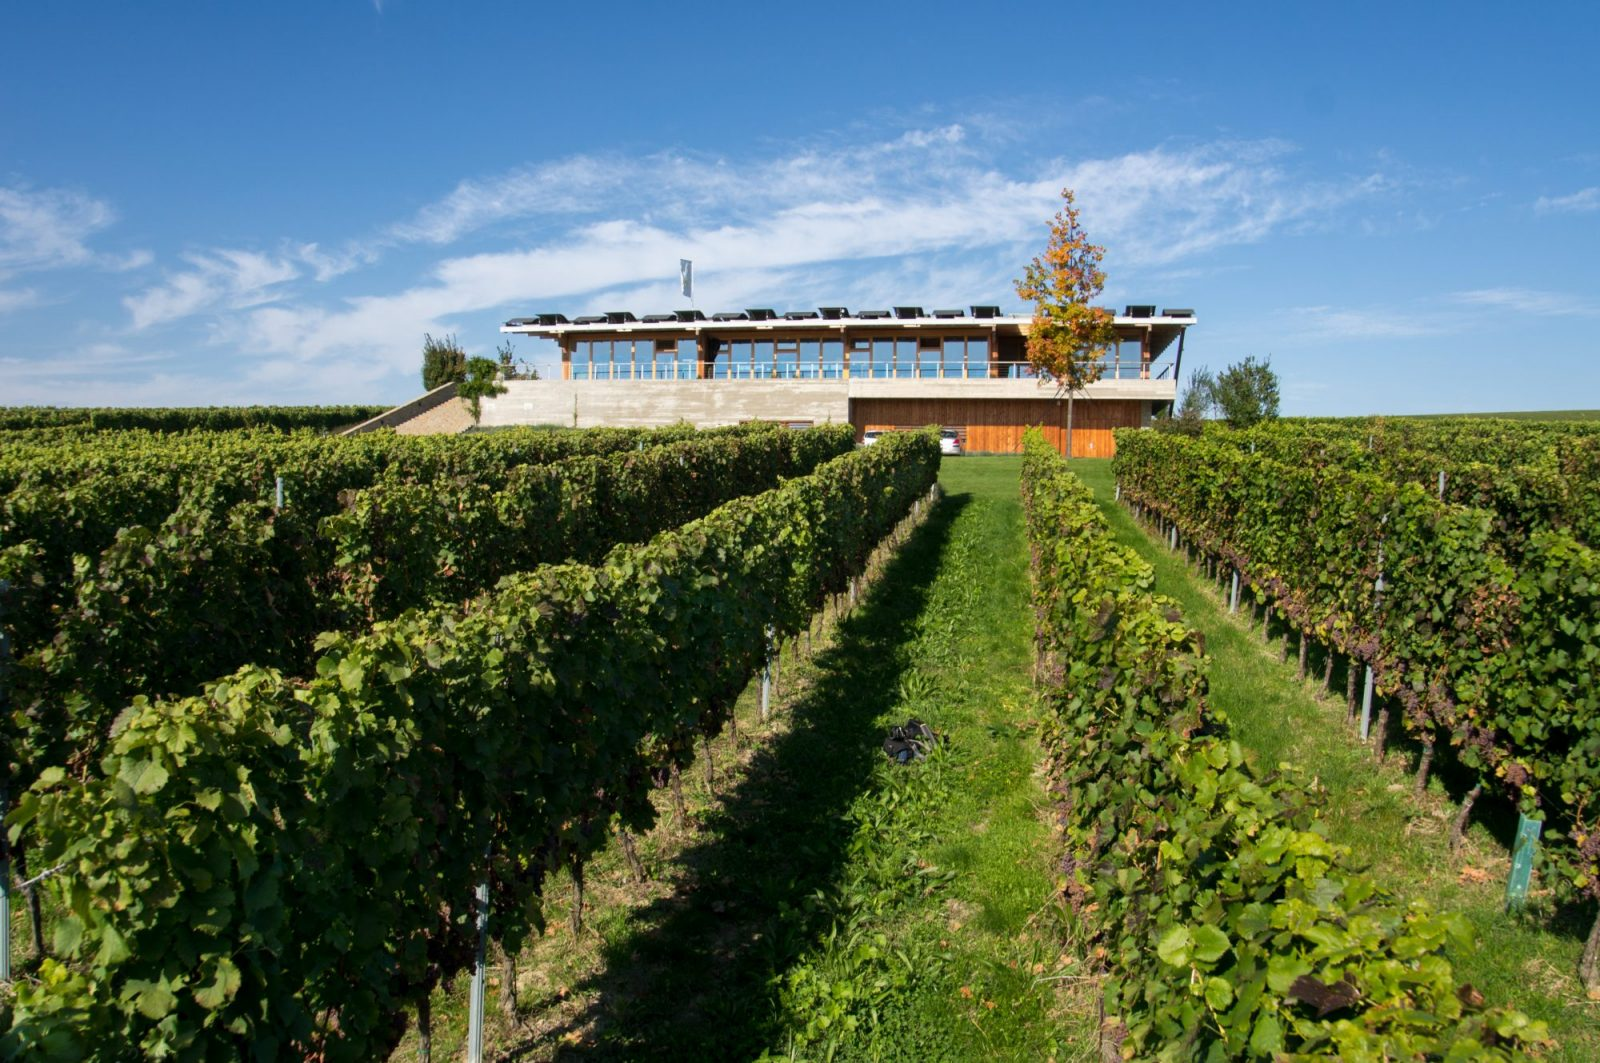 Sonberk Vineyards and Winery in South Moravia